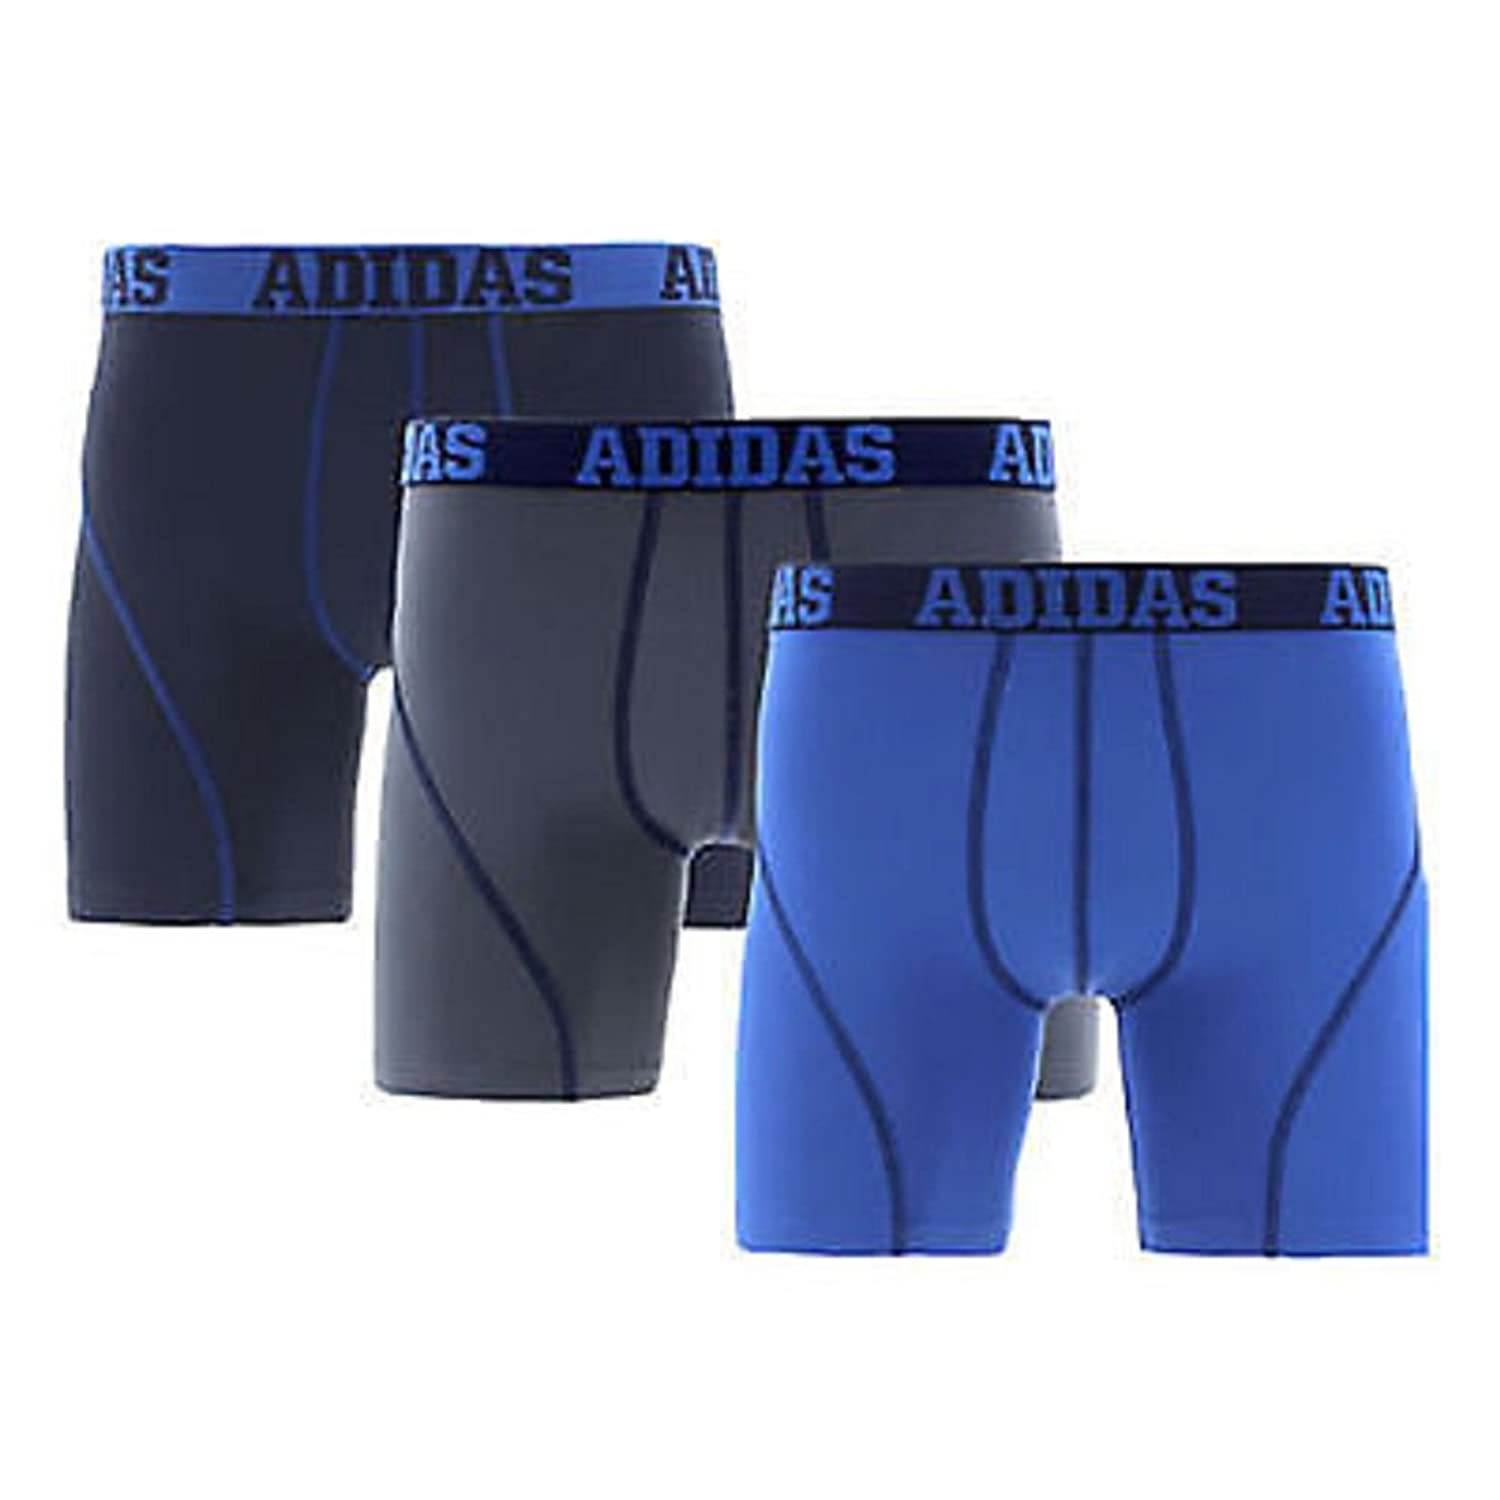 Adidas Mens Climalite Performance Boxer Briefs 3 Pack XL (40-42):  Amazon.co.uk: Clothing